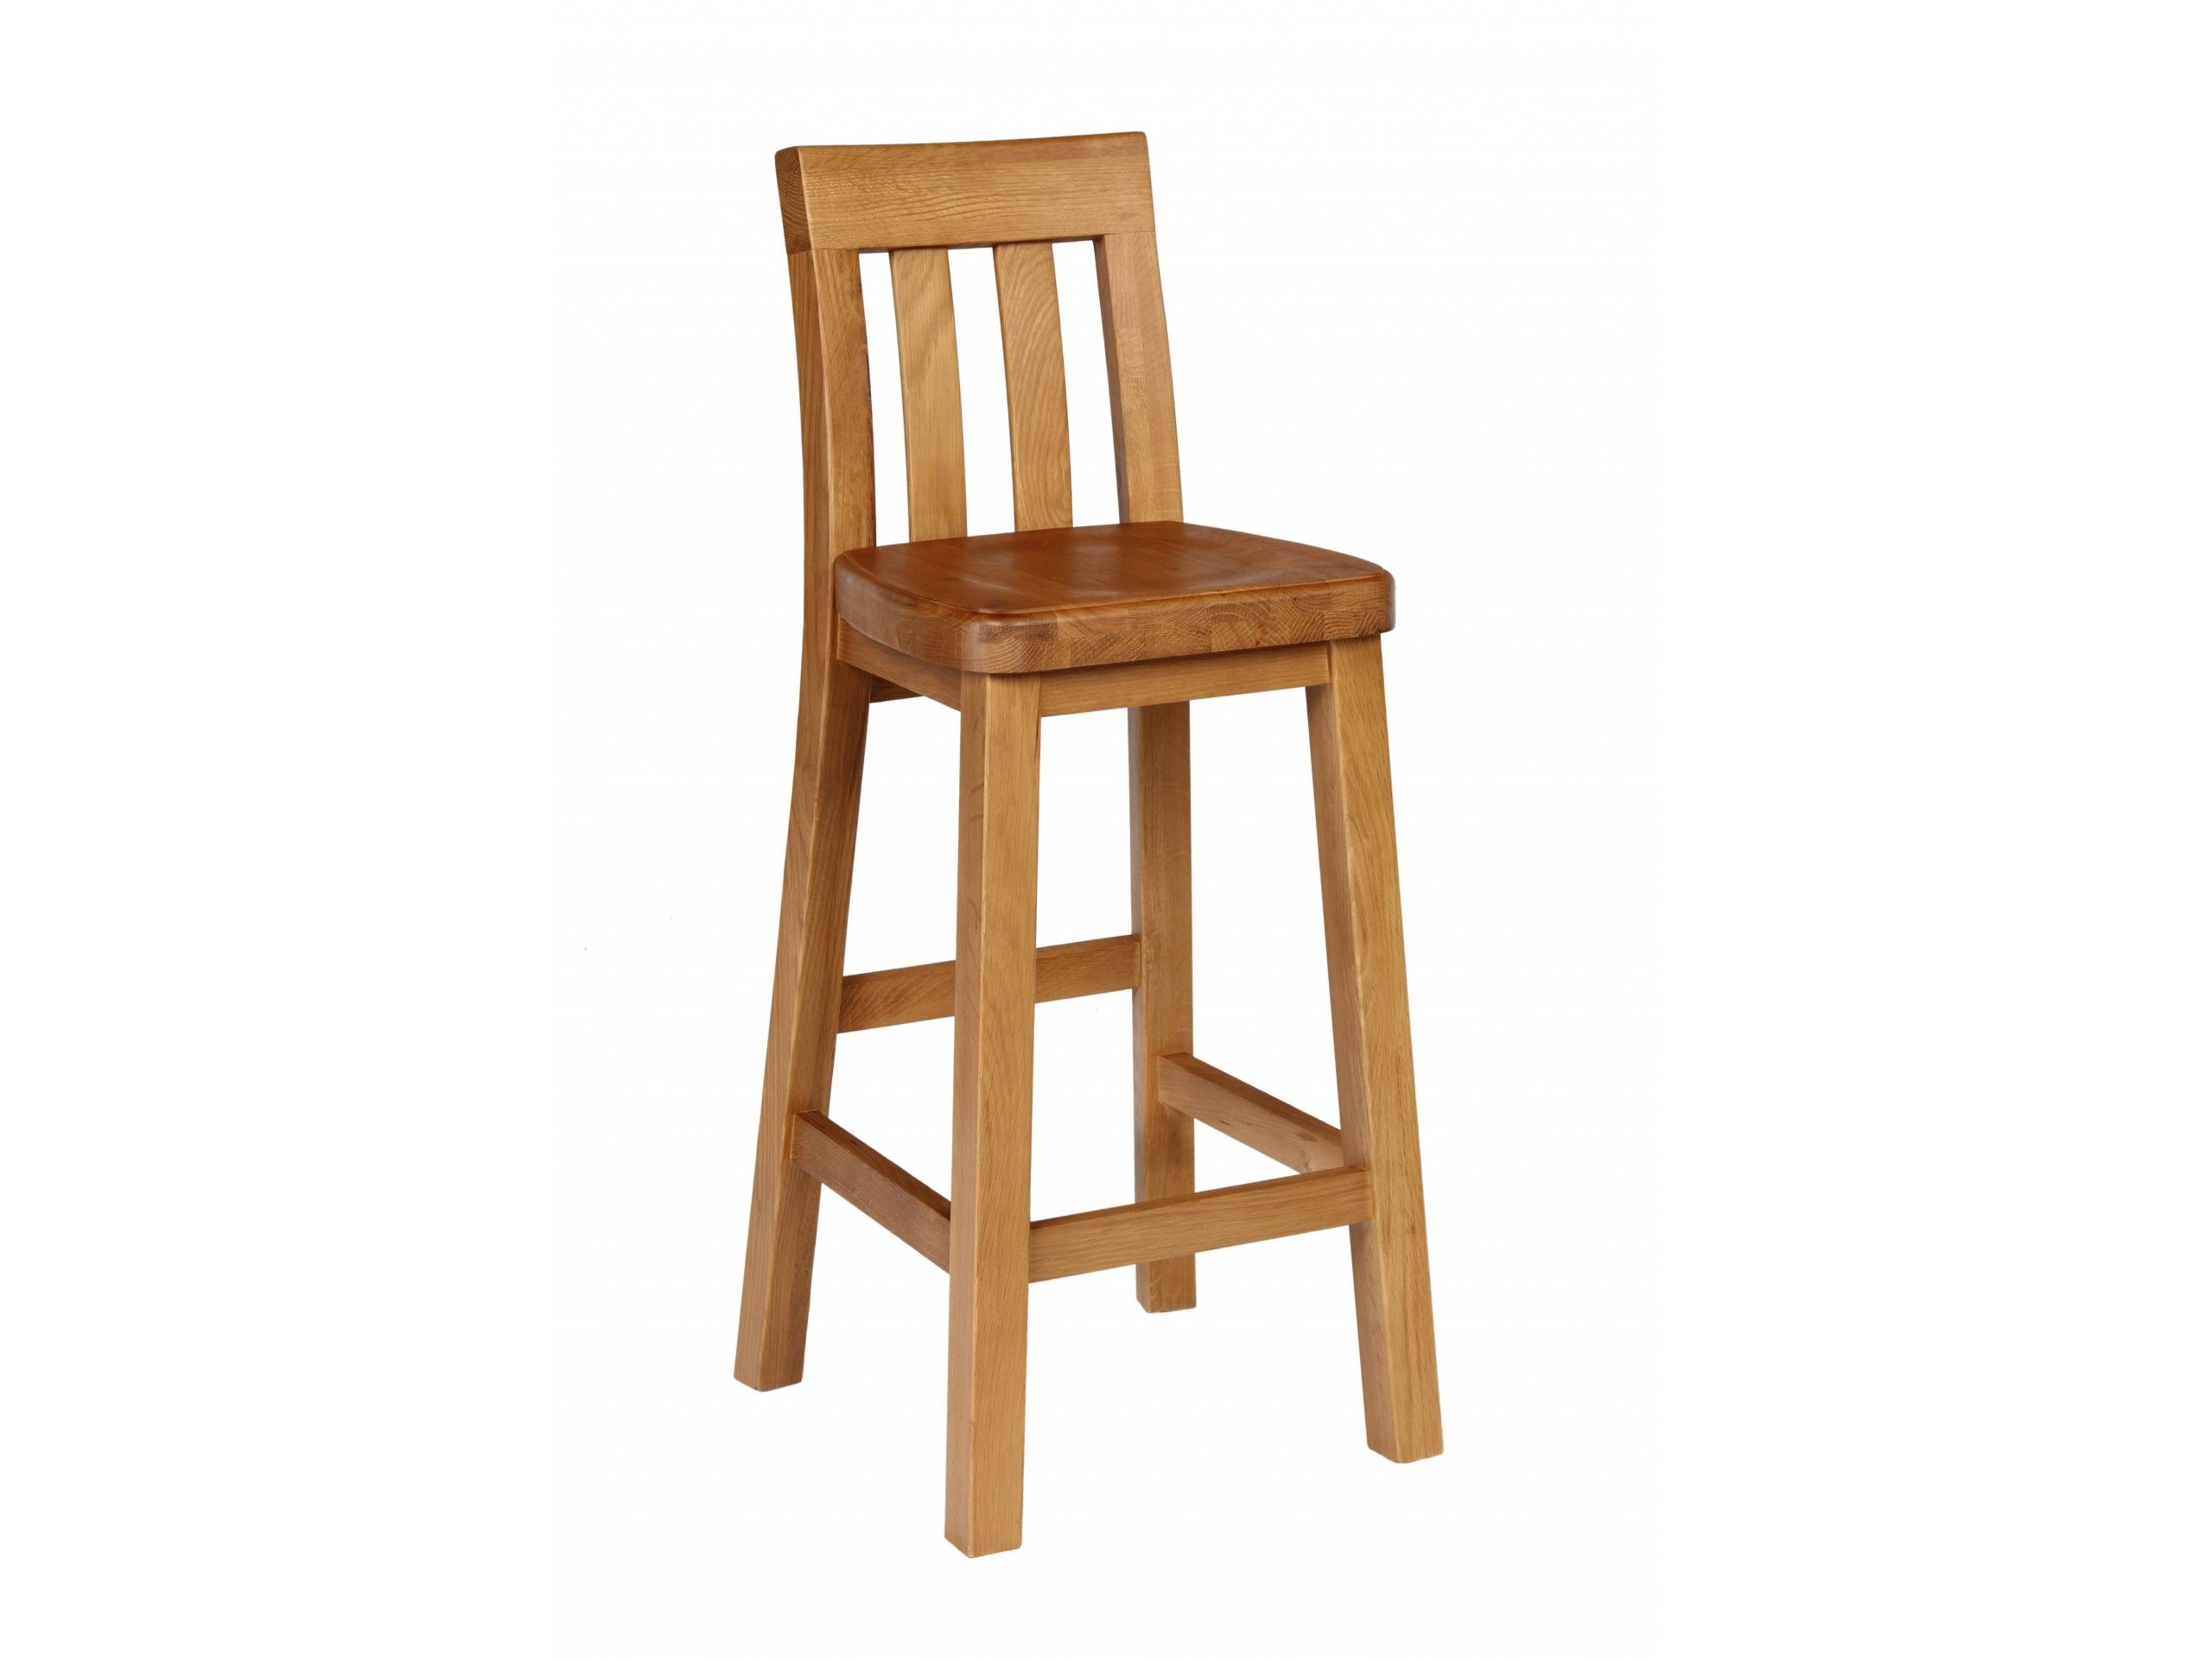 Billy solid oak kitchen bar stool  sc 1 st  Pinterest & Billy solid oak kitchen bar stool | Oak Bar Stools u0026 Kitchen ... islam-shia.org